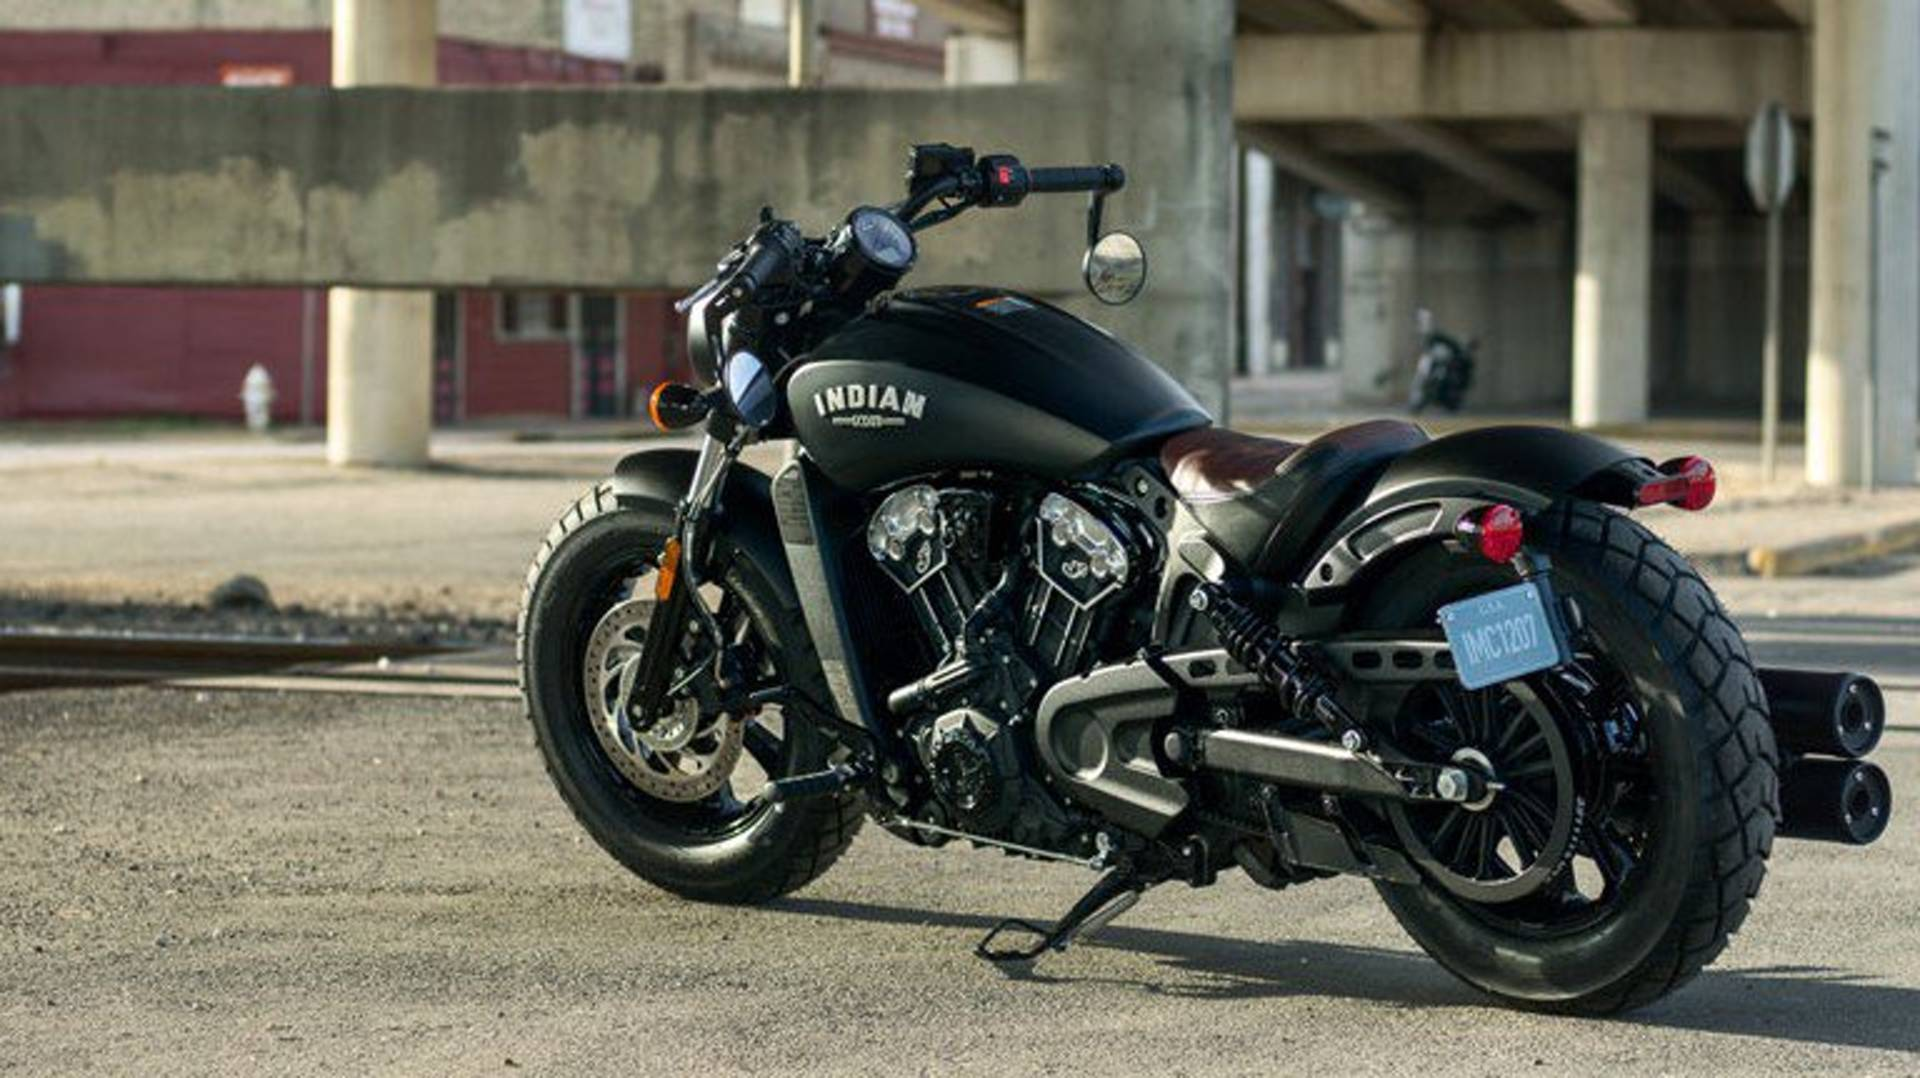 Indian Motorcycle introduces its new Scout Bobber • Spotter Up